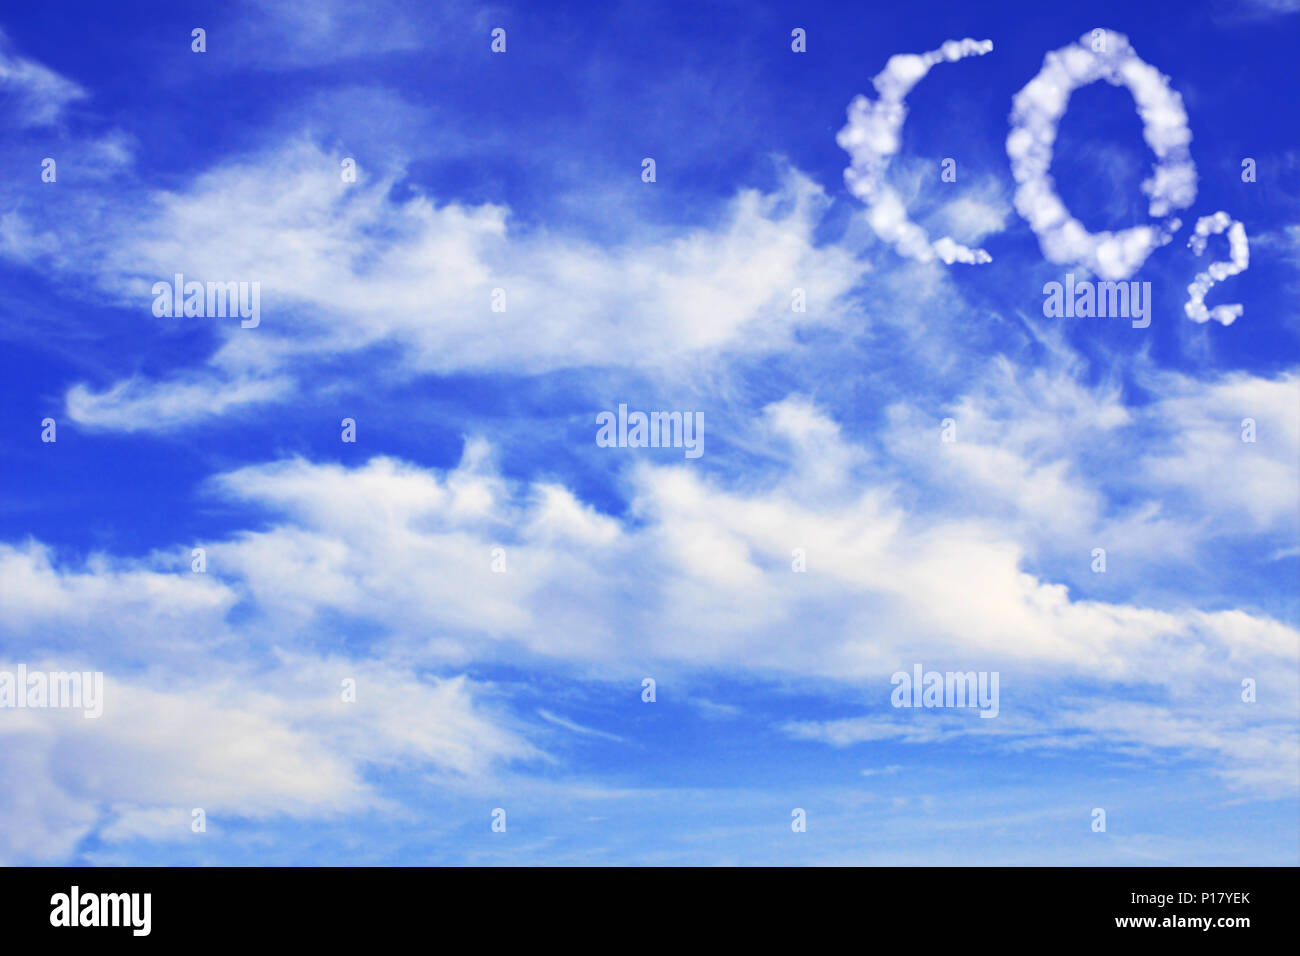 Symbol CO2 from clouds on blue sky - Stock Image